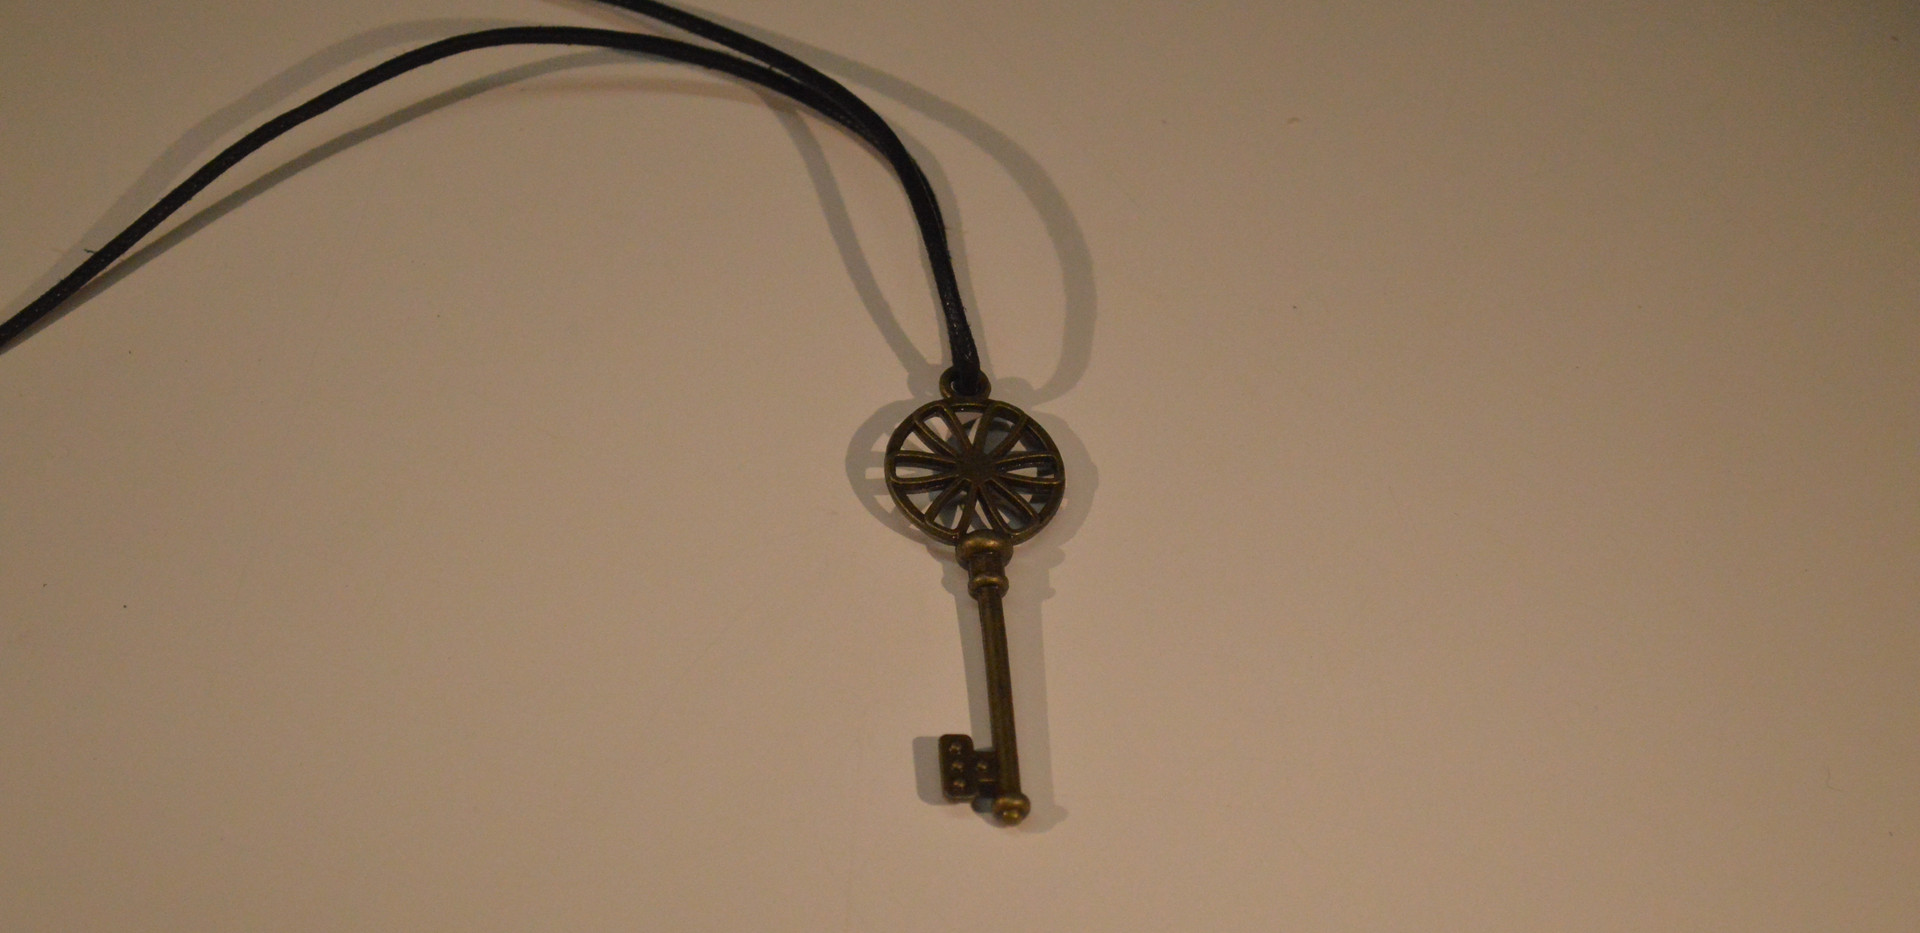 Collier clef n°1